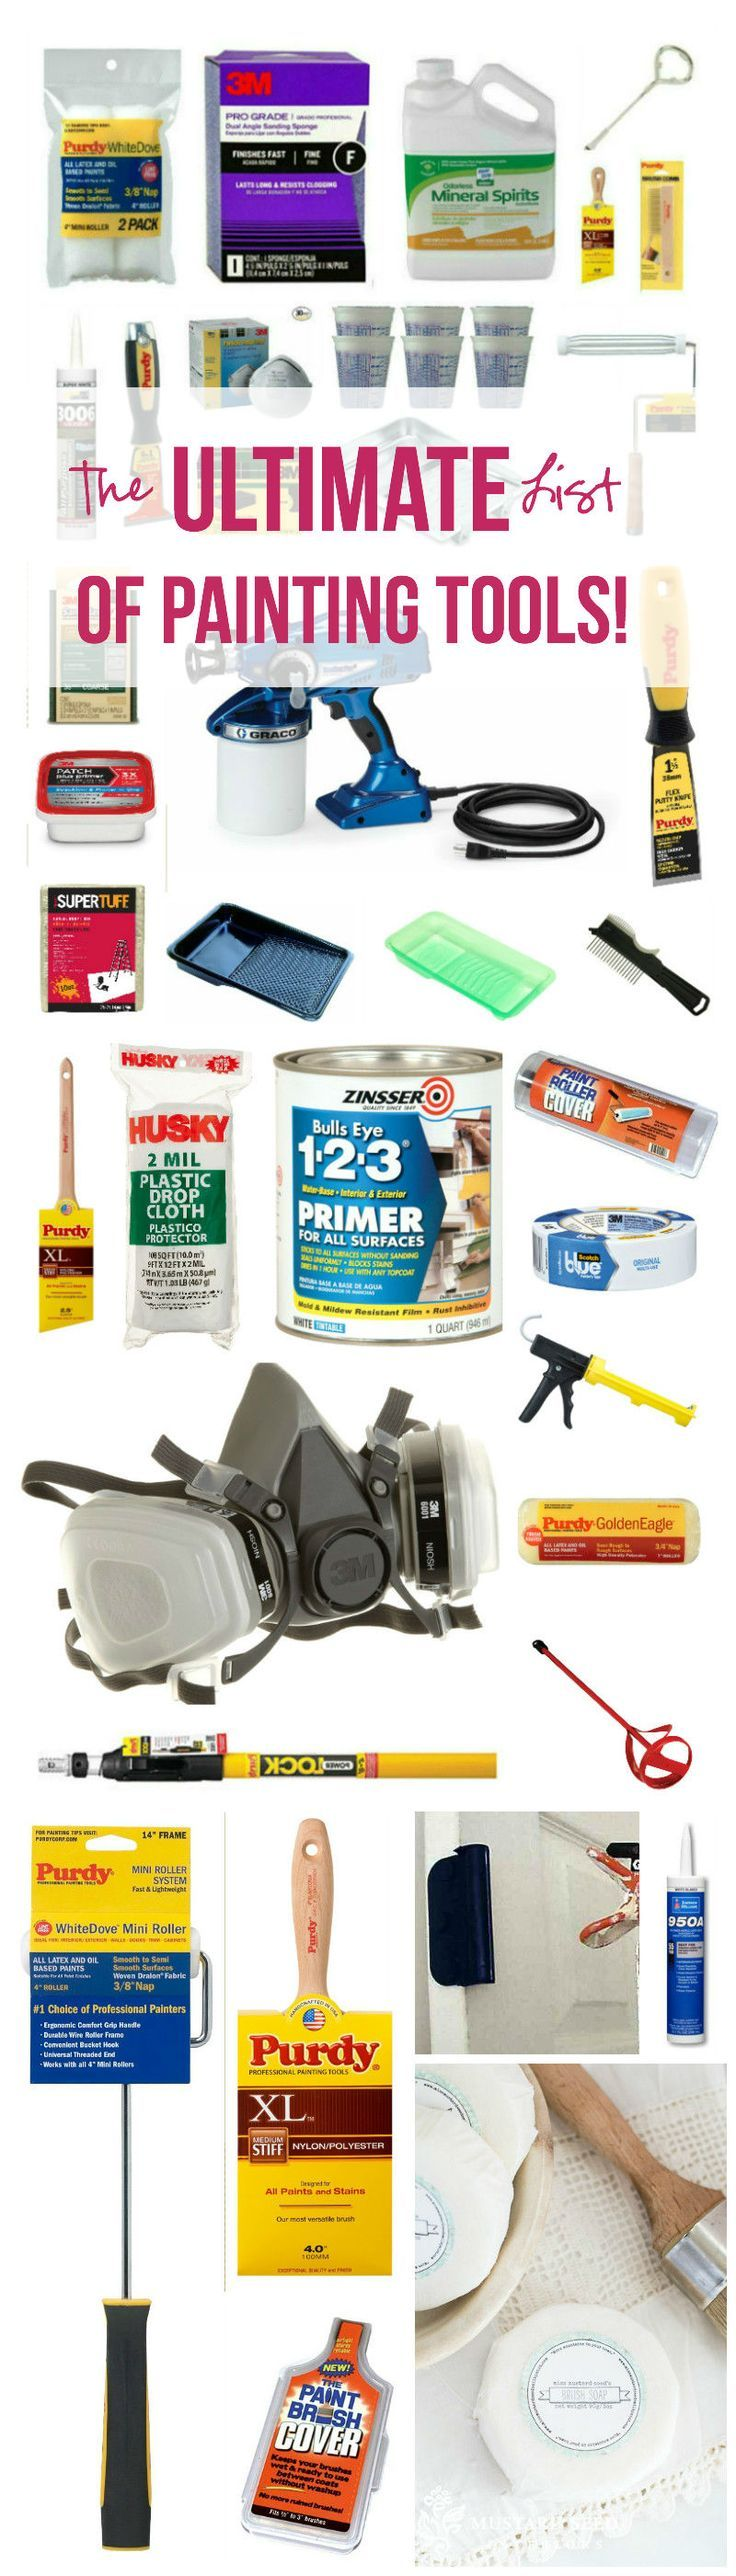 The Ultimate List Of Painting Tools